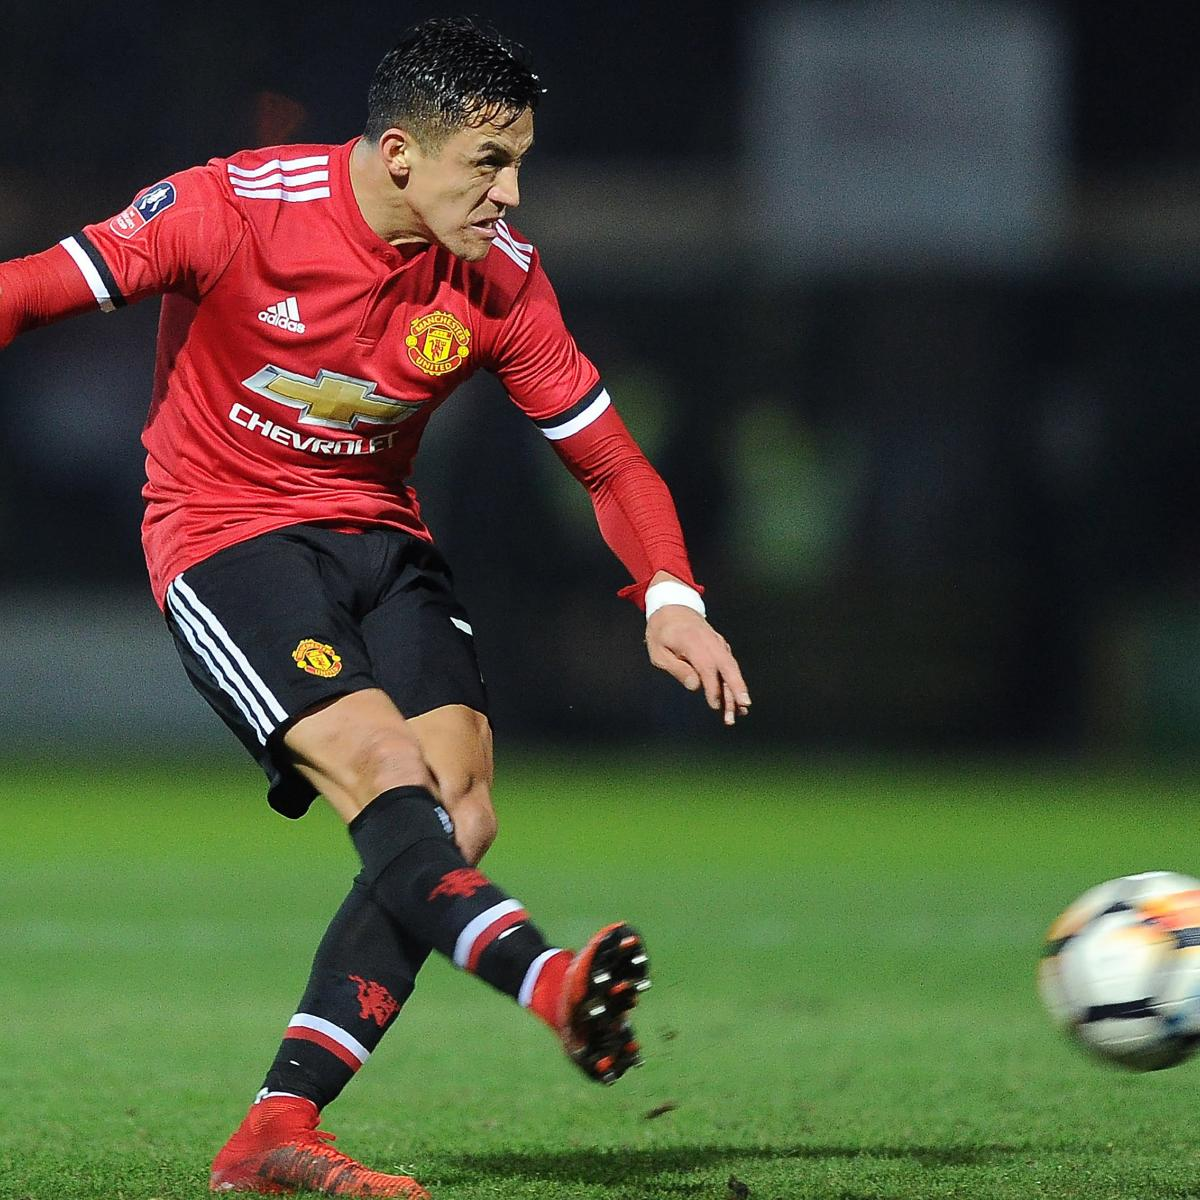 Live Streaming Soccer News Liverpool Vs Benfica Live: Tottenham Vs. Manchester United: Preview, Live Stream And